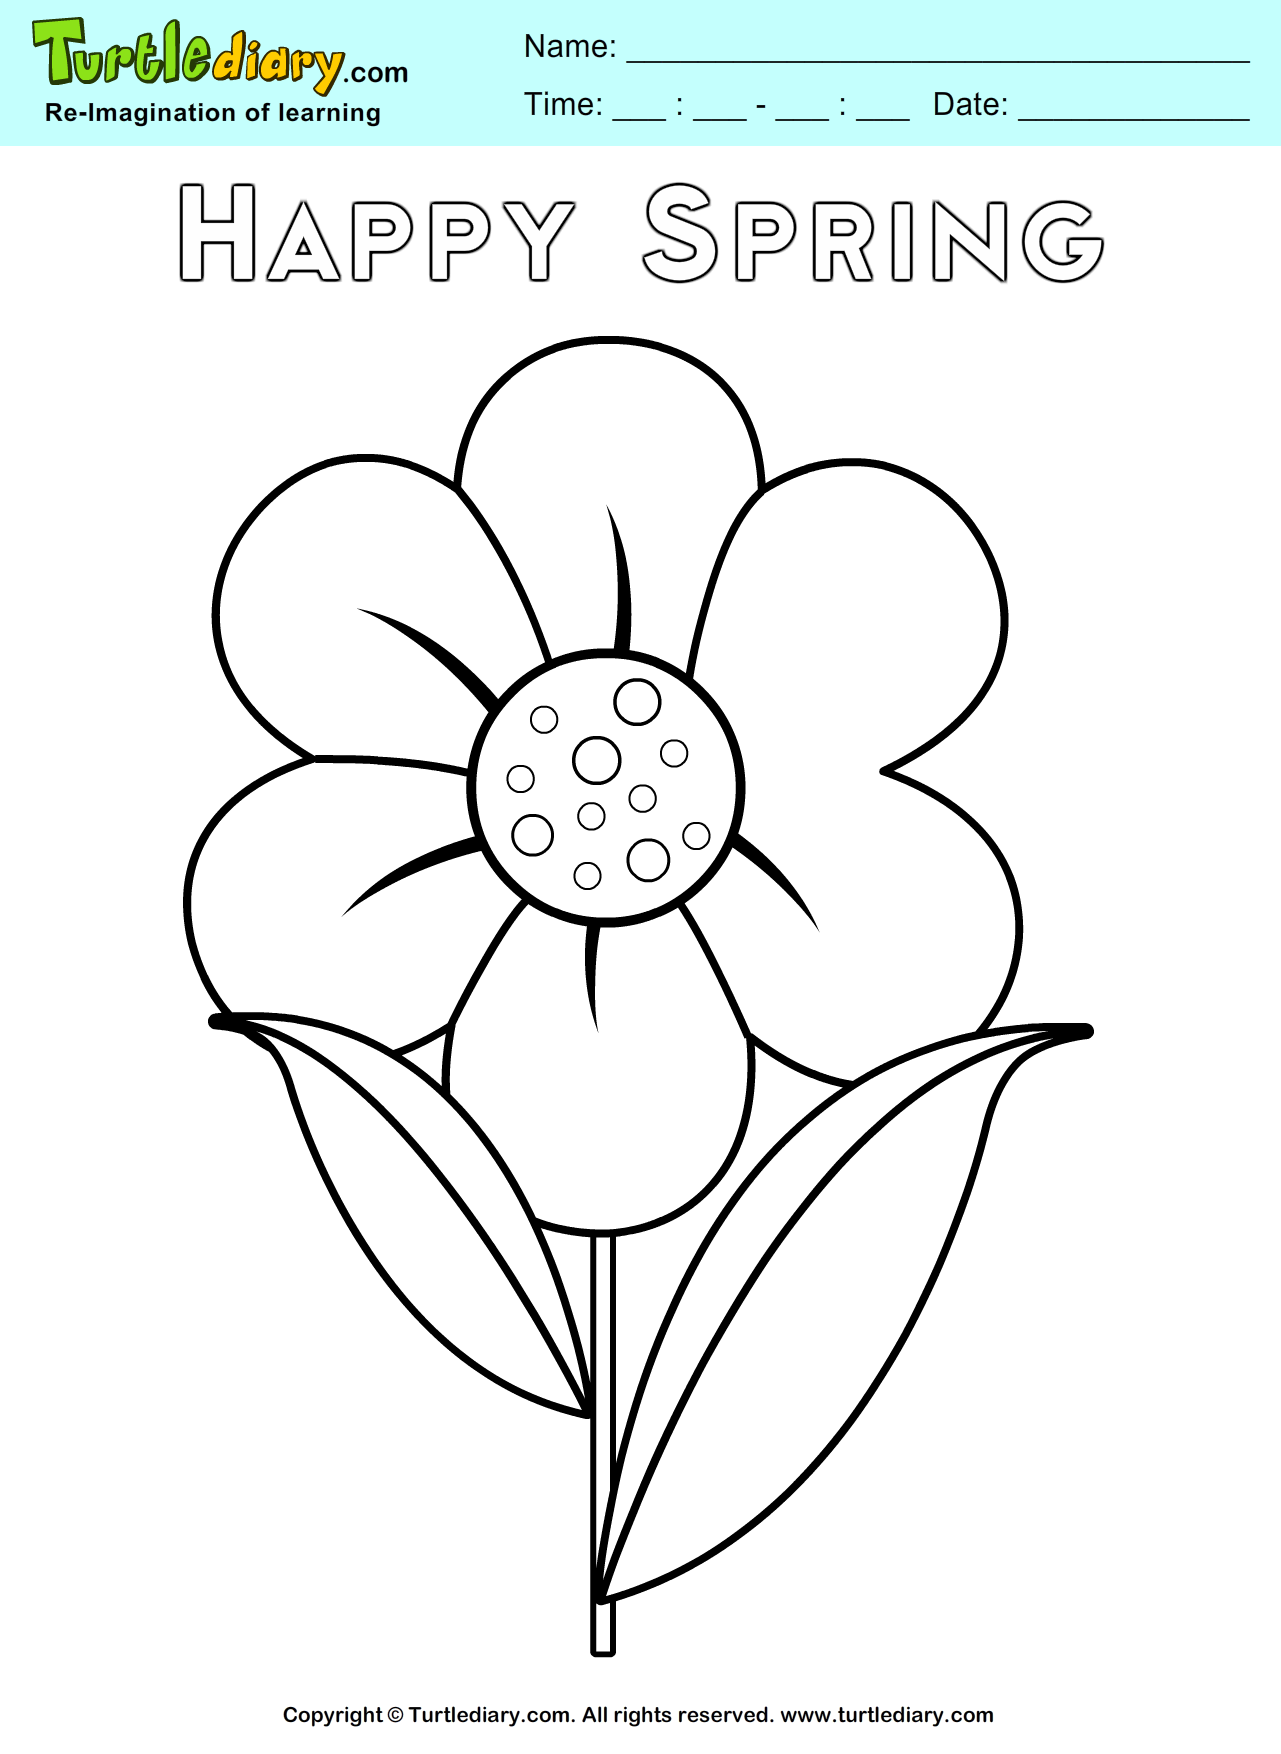 Spring flower coloring page turtle diary spring flower coloring sheet mightylinksfo